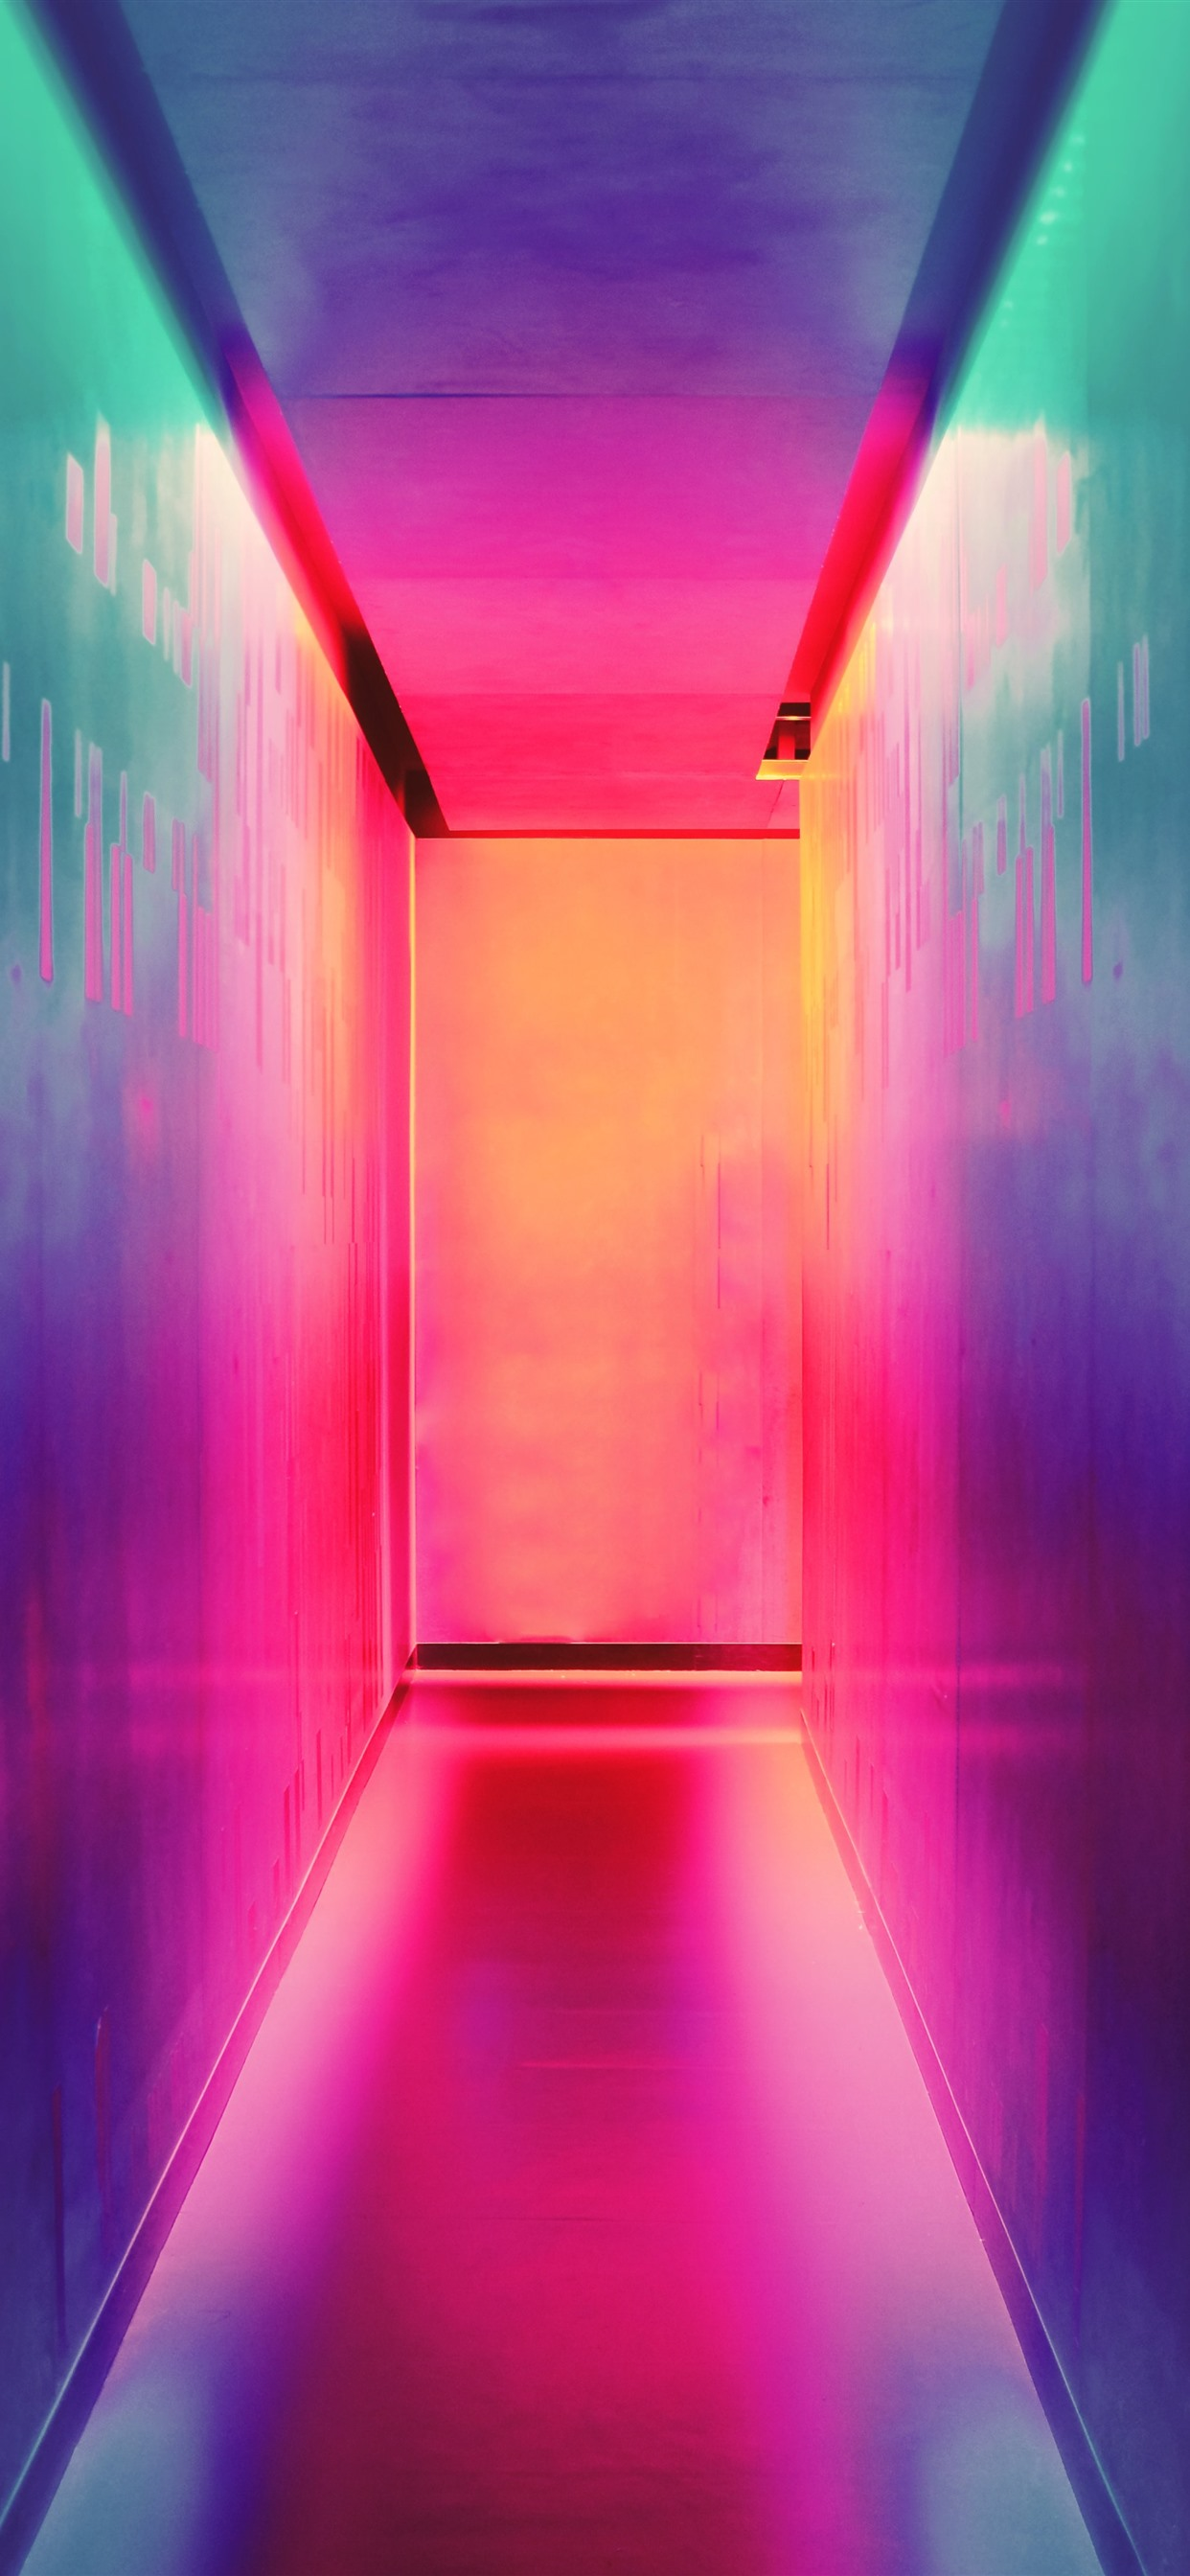 Alley Wall Colorful Light 1242x2688 Iphone Xs Max Wallpaper